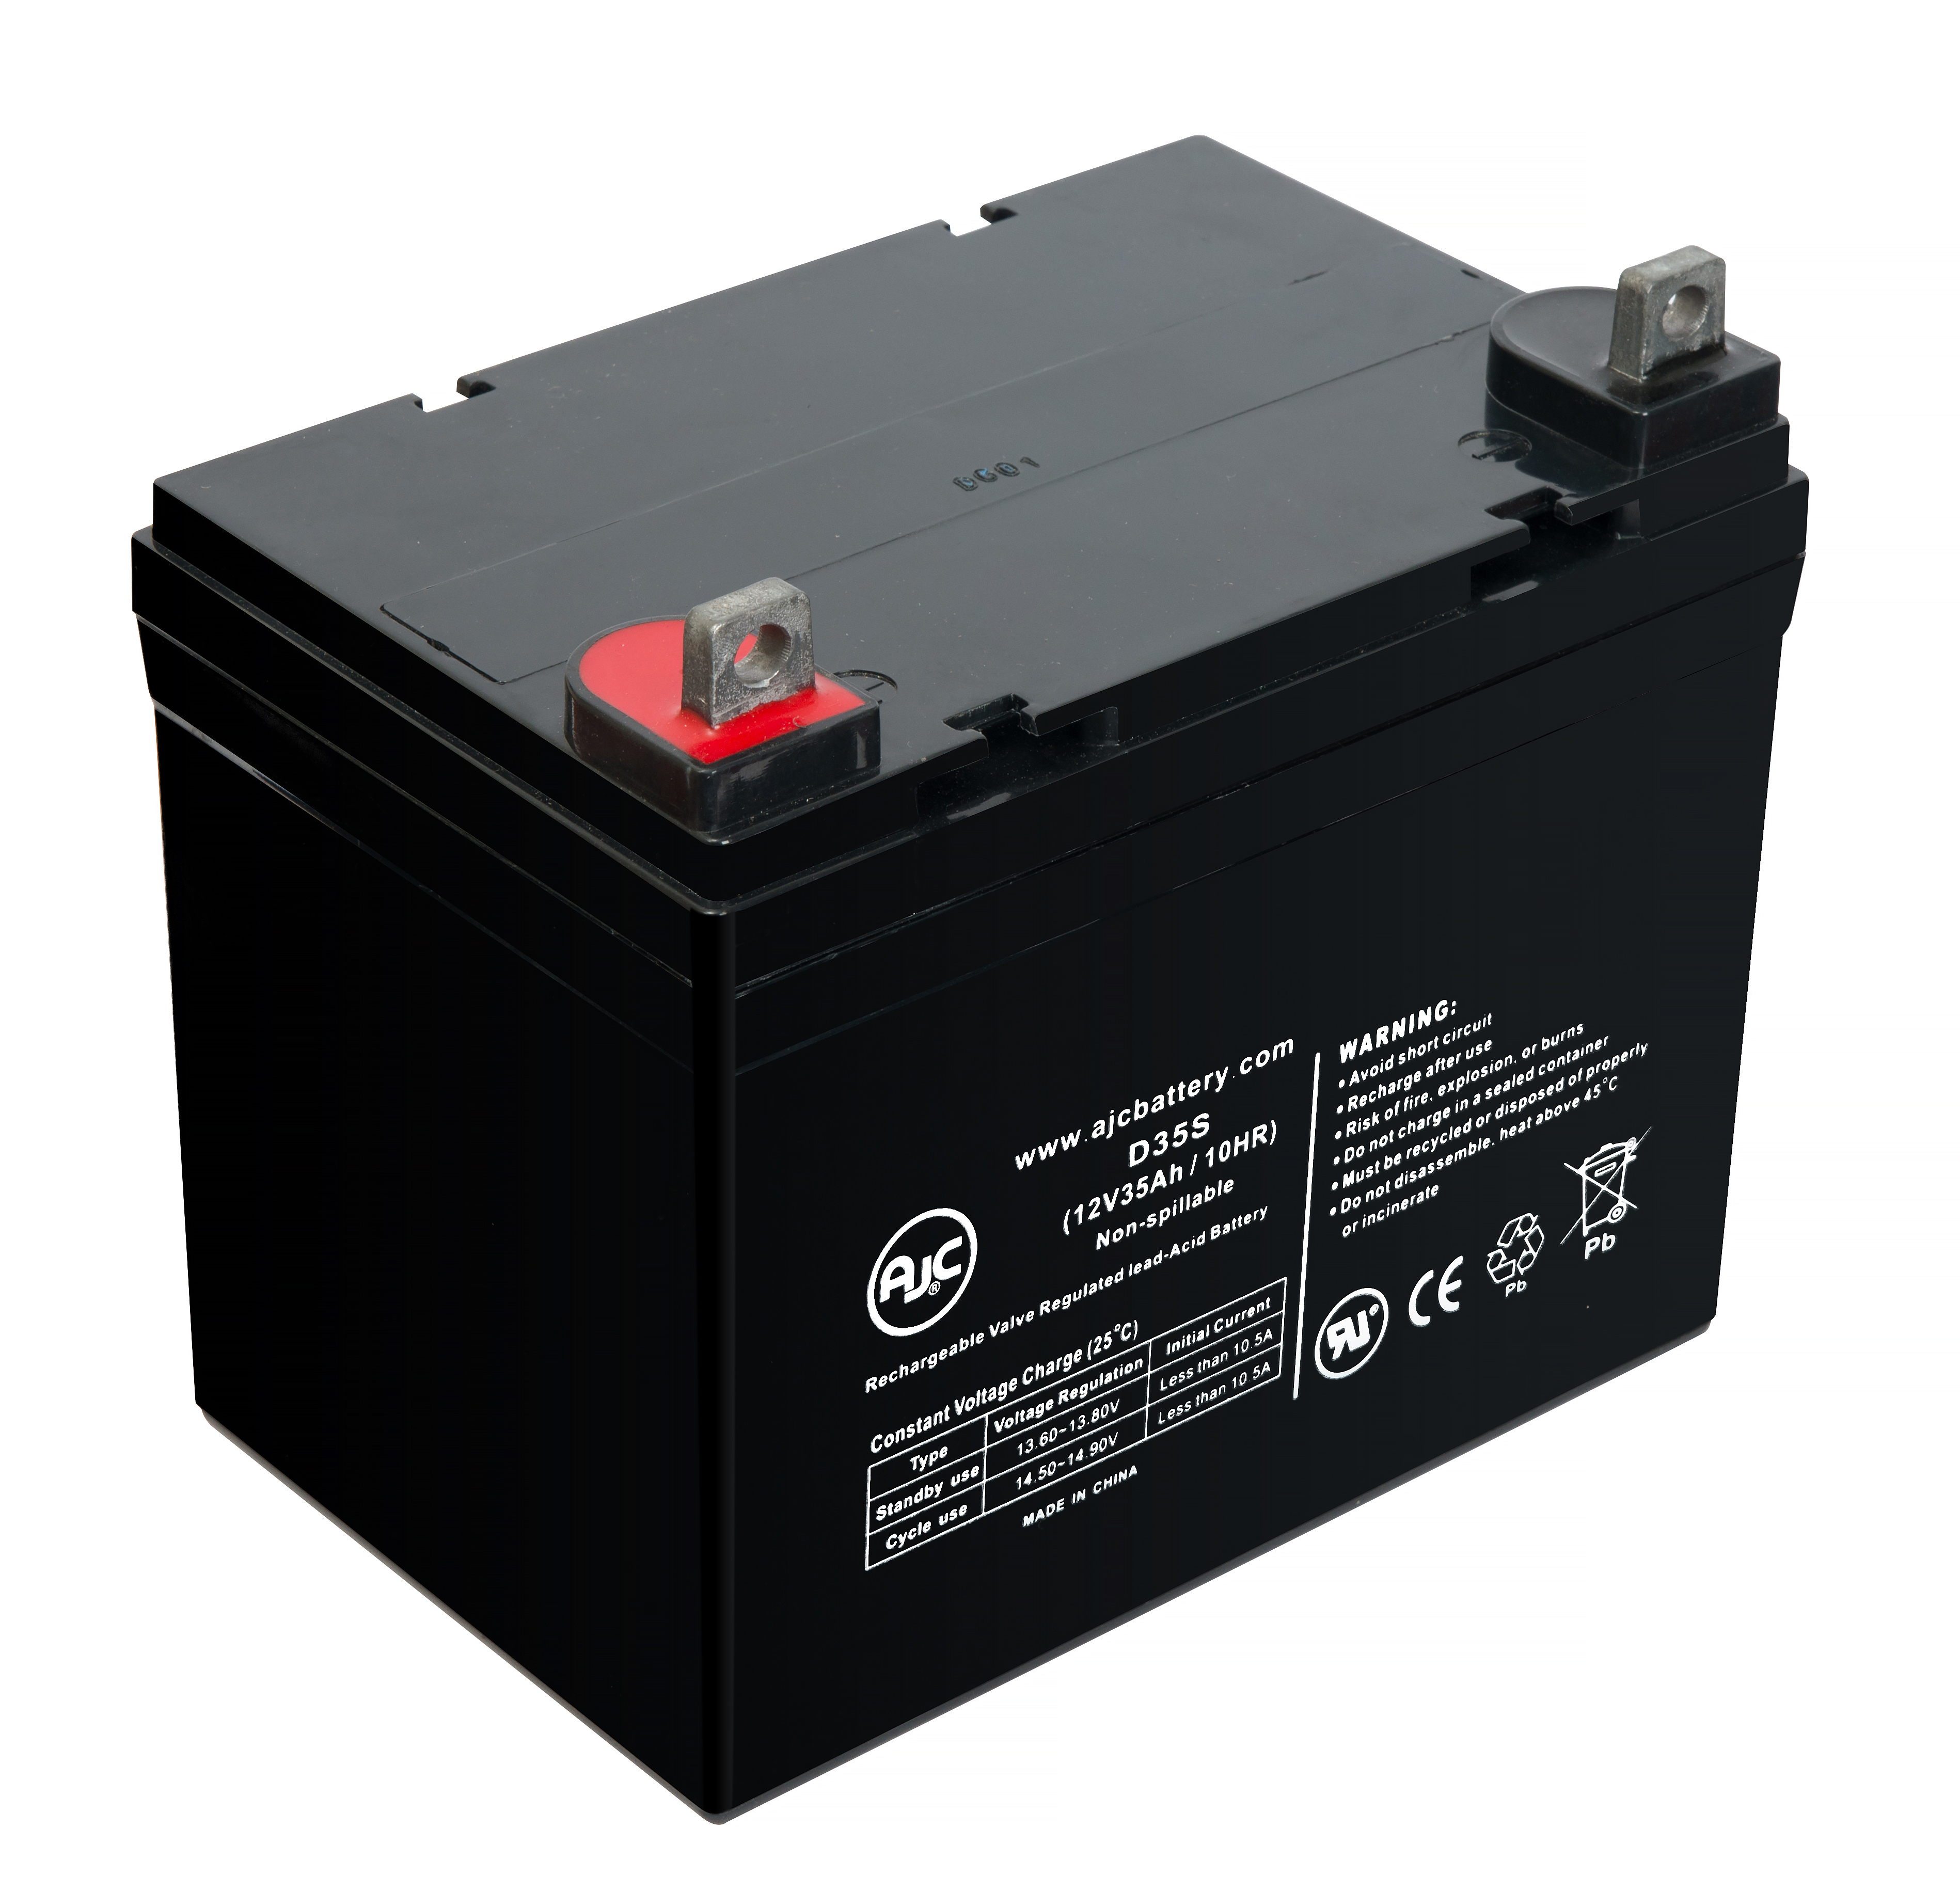 Honda H4514 12V 35Ah Lawn and Garden Battery - This is an AJC Brand Replacement